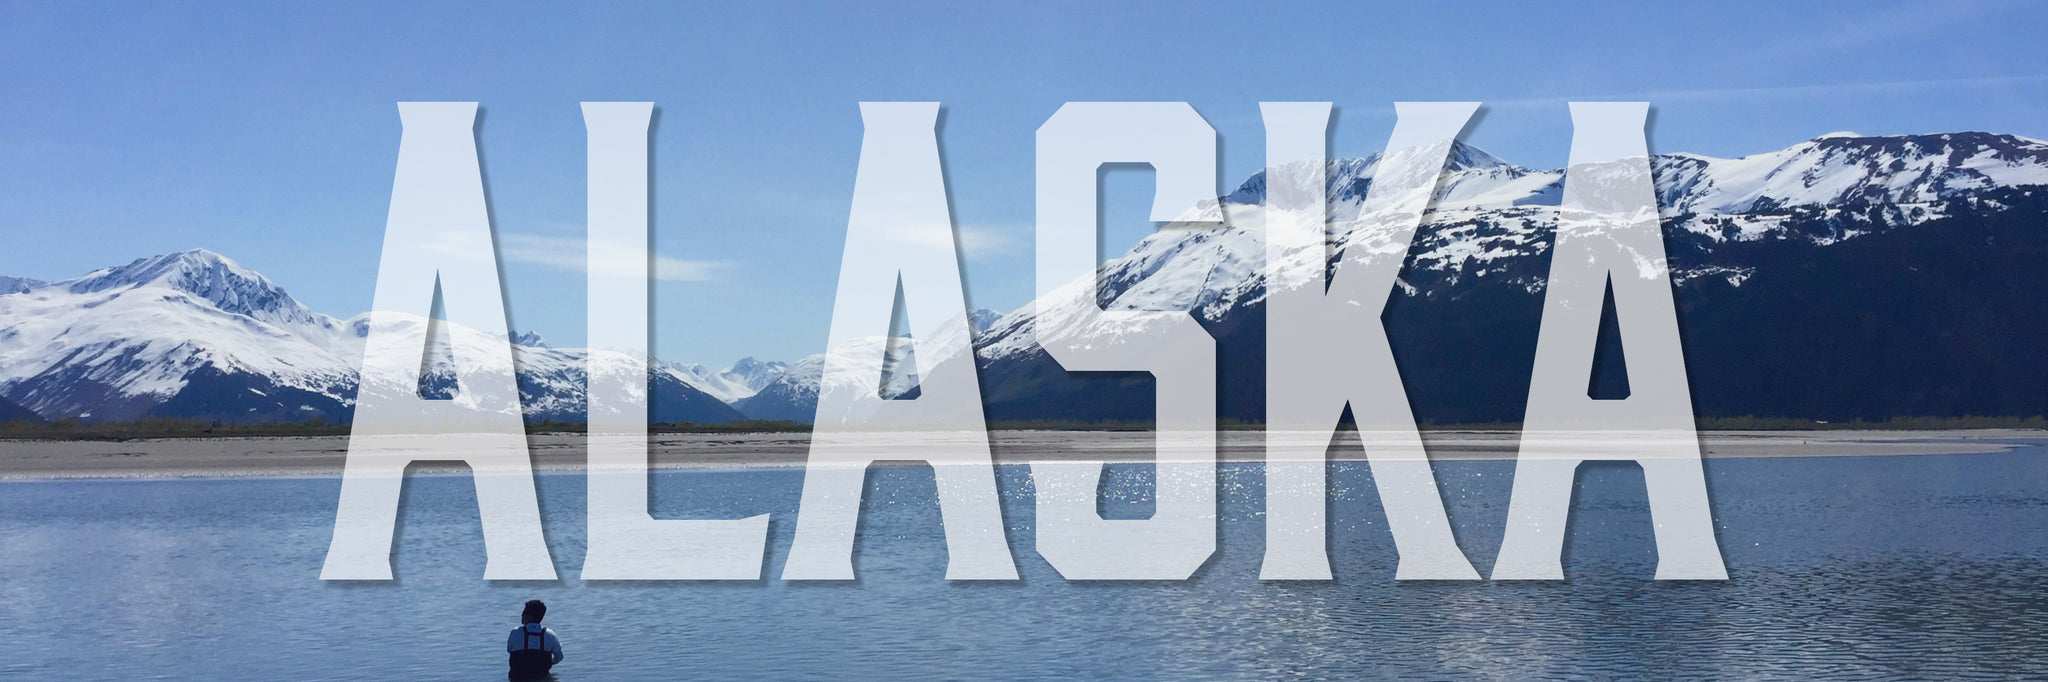 Alaska Outdoor Apparel and Accessories